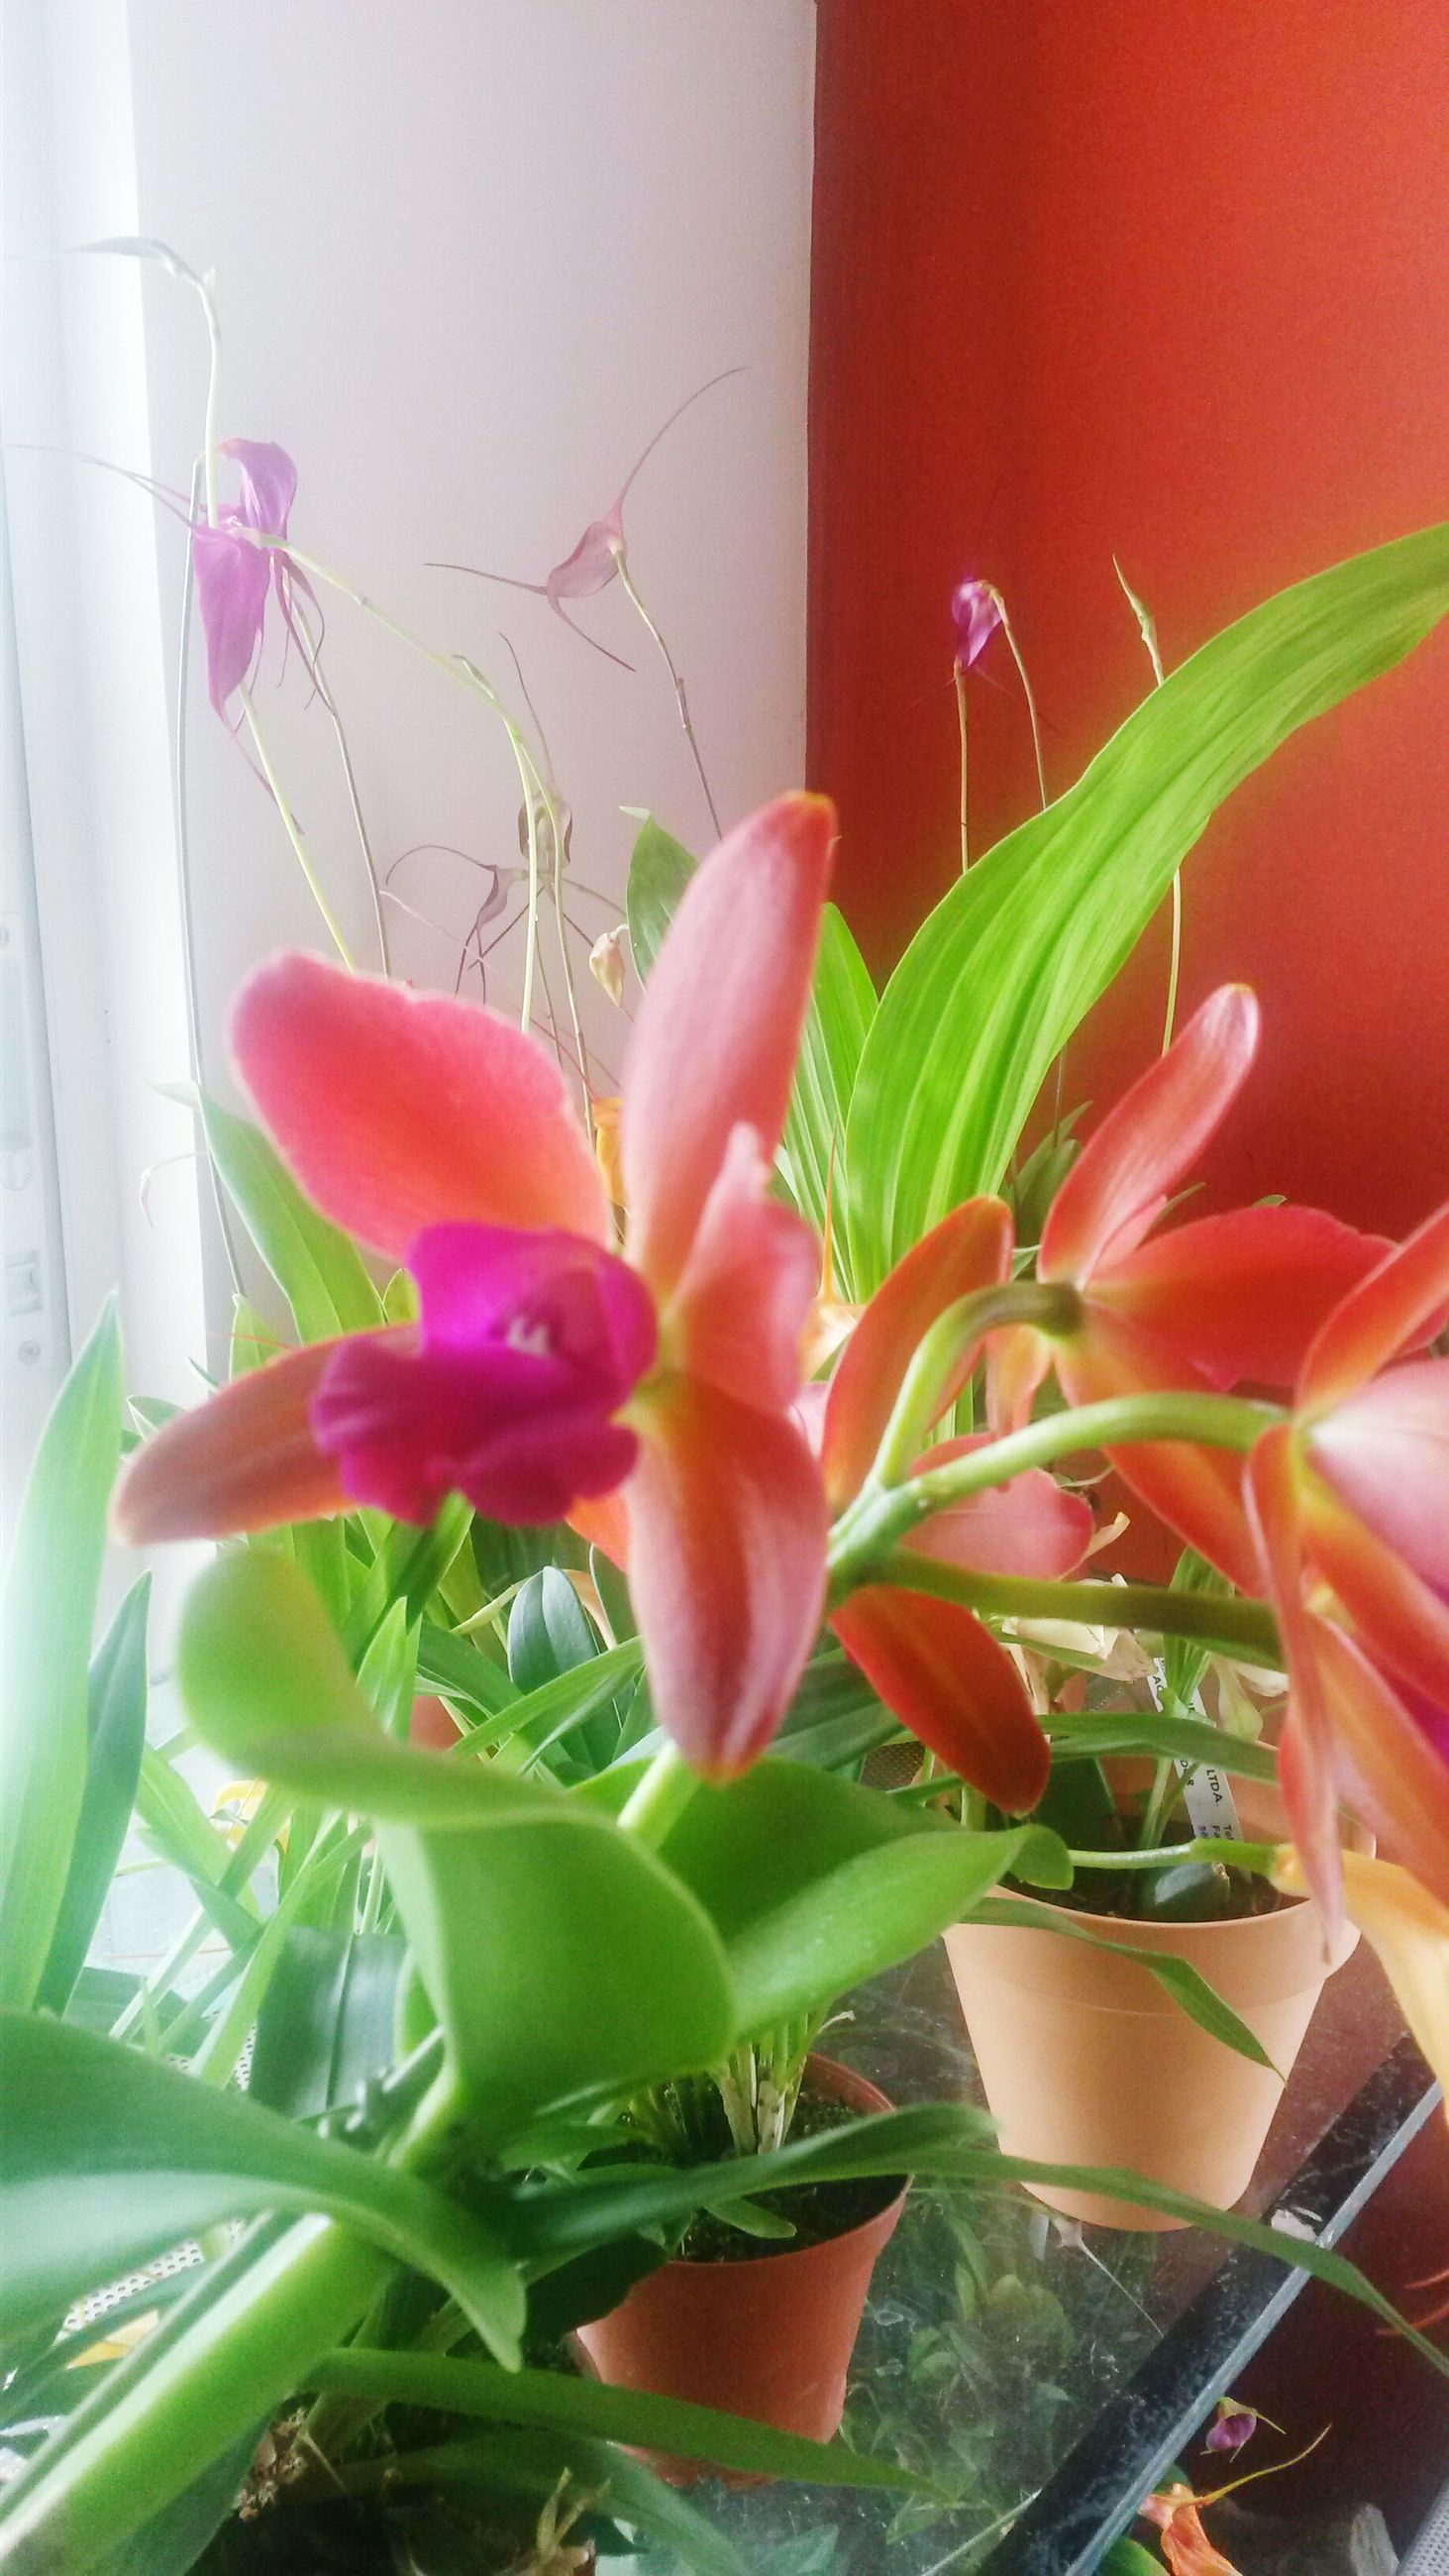 flower, petal, freshness, fragility, growth, flower head, plant, potted plant, indoors, beauty in nature, leaf, nature, close-up, blooming, vase, stem, home interior, wall - building feature, in bloom, window